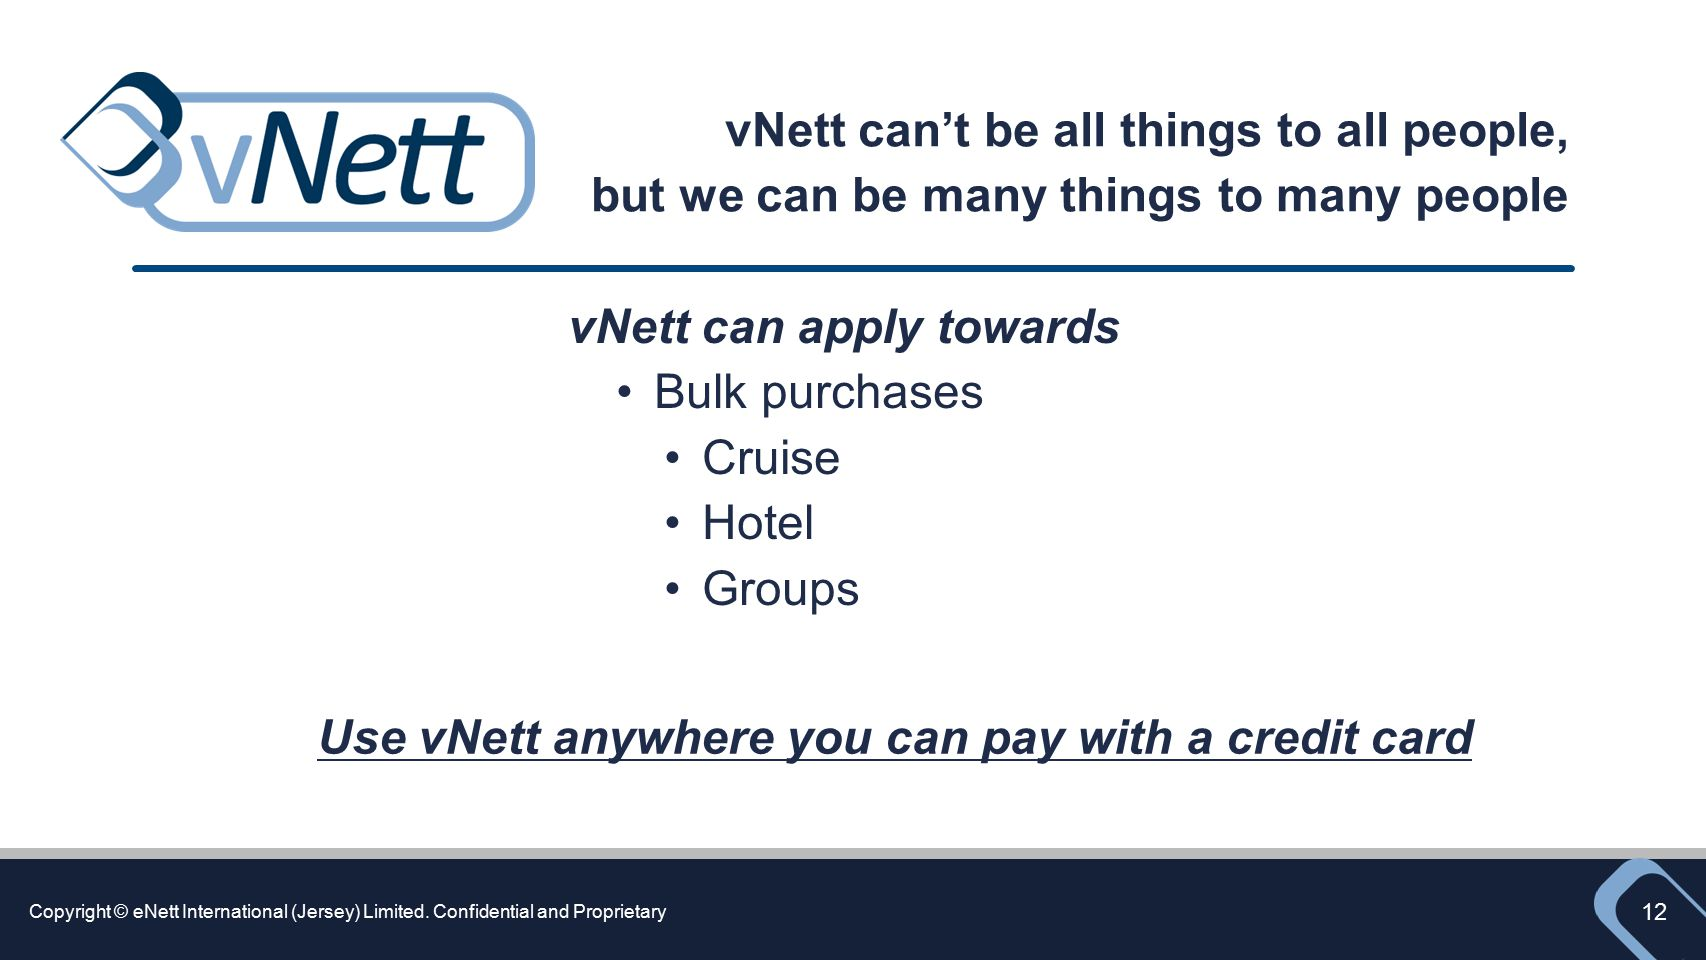 Use vNett anywhere you can pay with a credit card